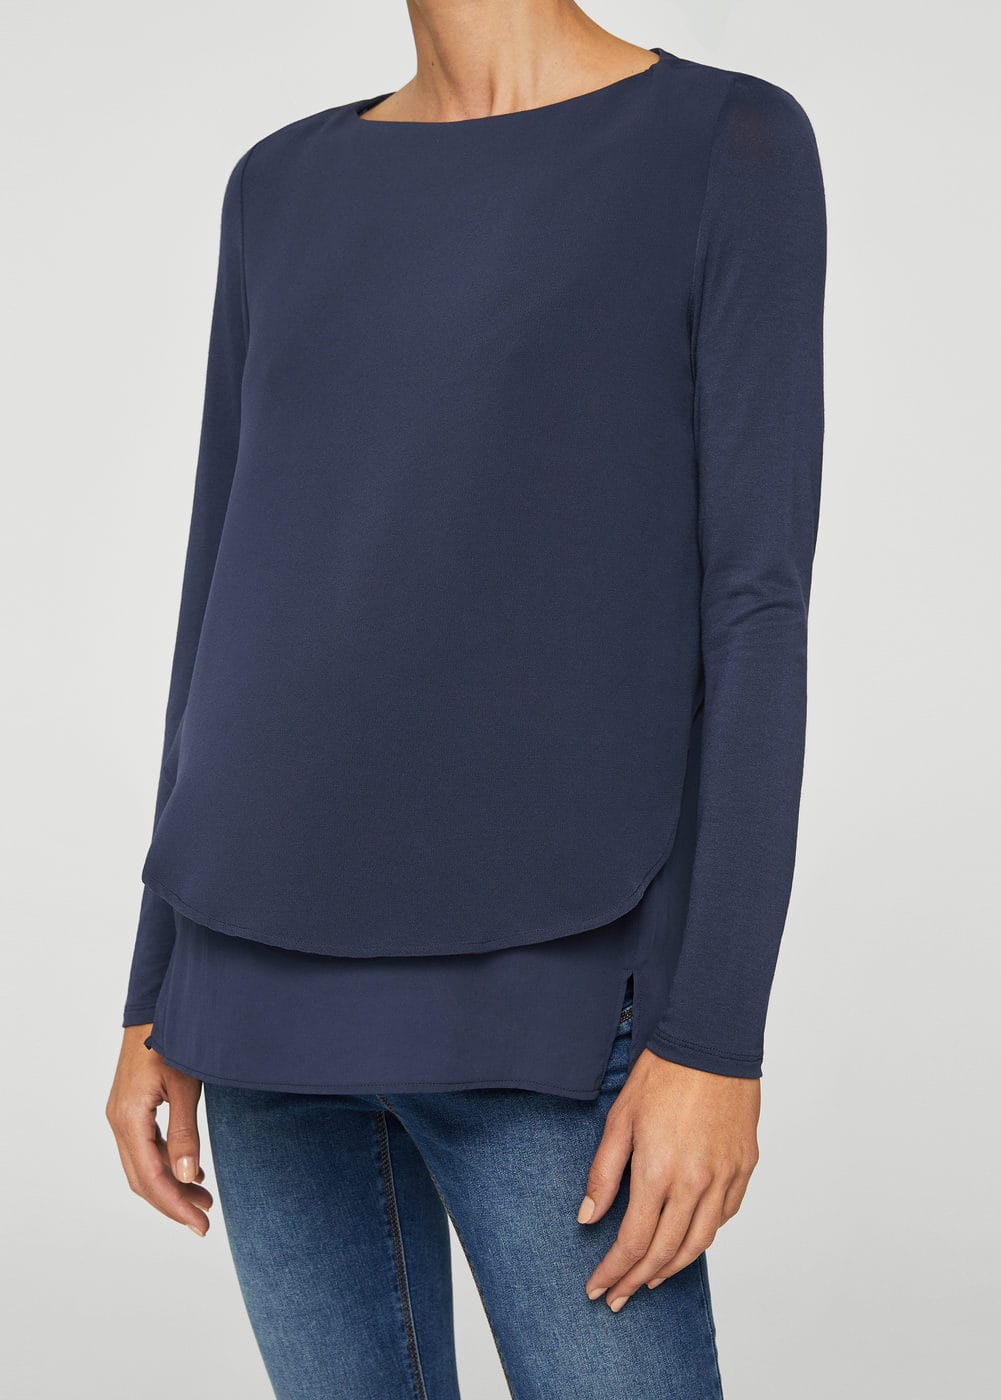 Double-layer blouse | MNG